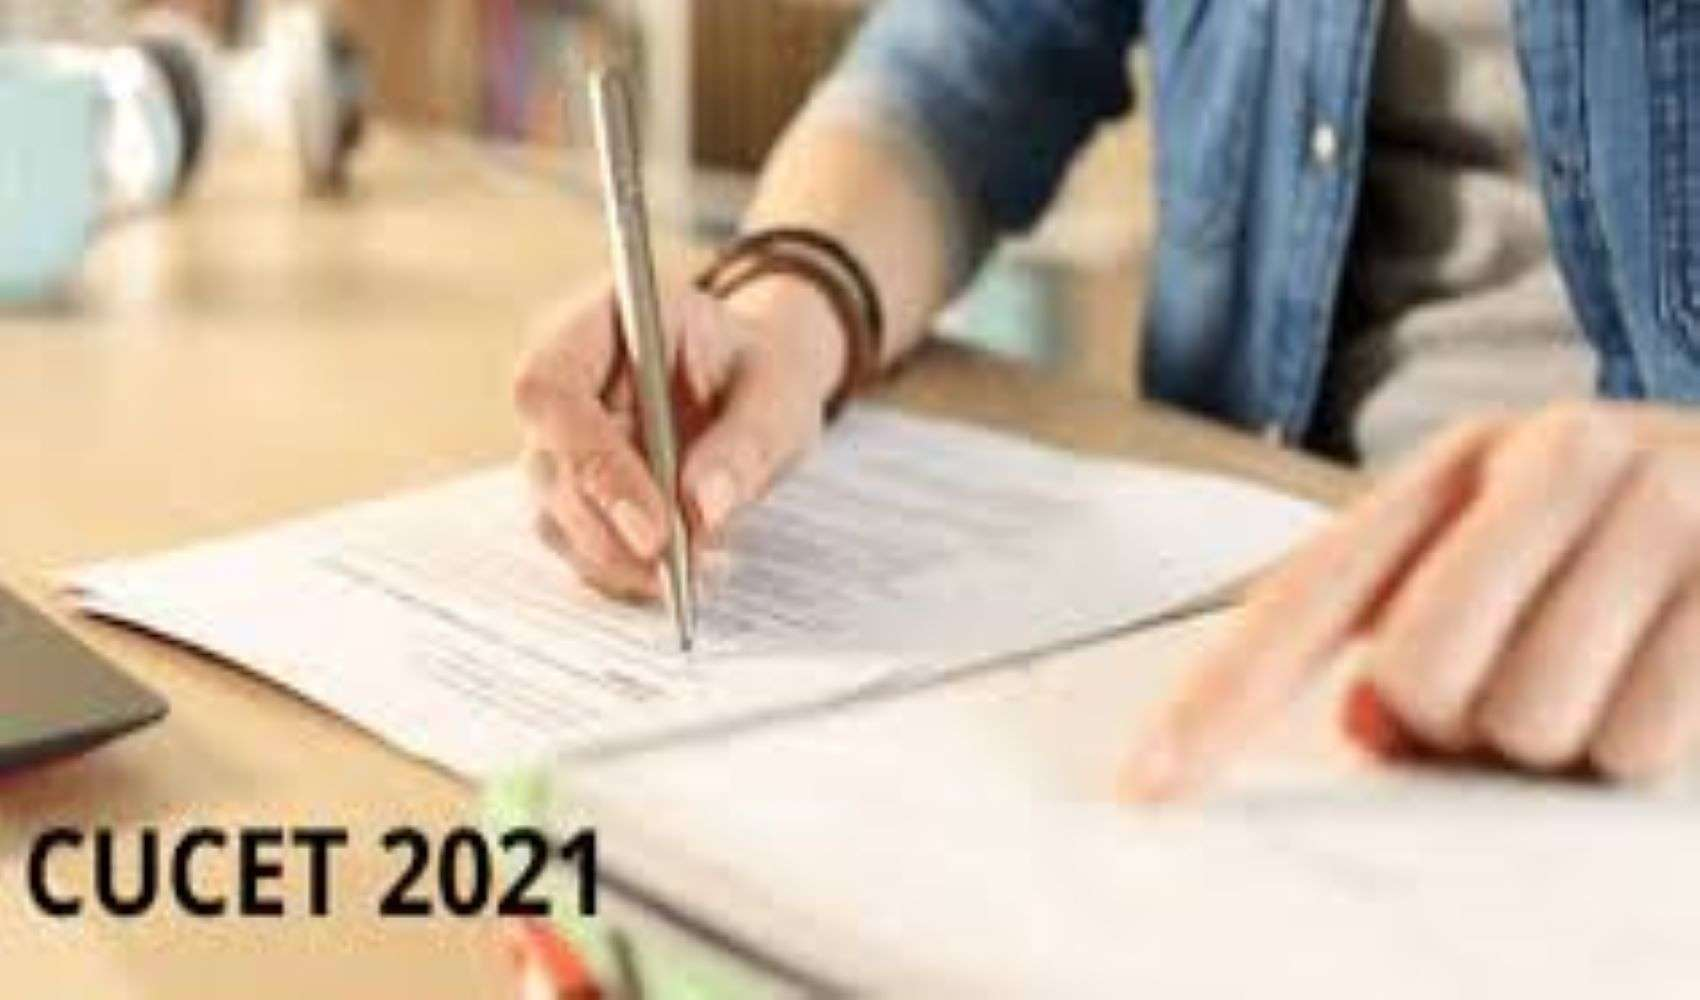 Central Universities Common Entrance Test (CUCET) for undergraduate admission cancelled for 2021-22 session